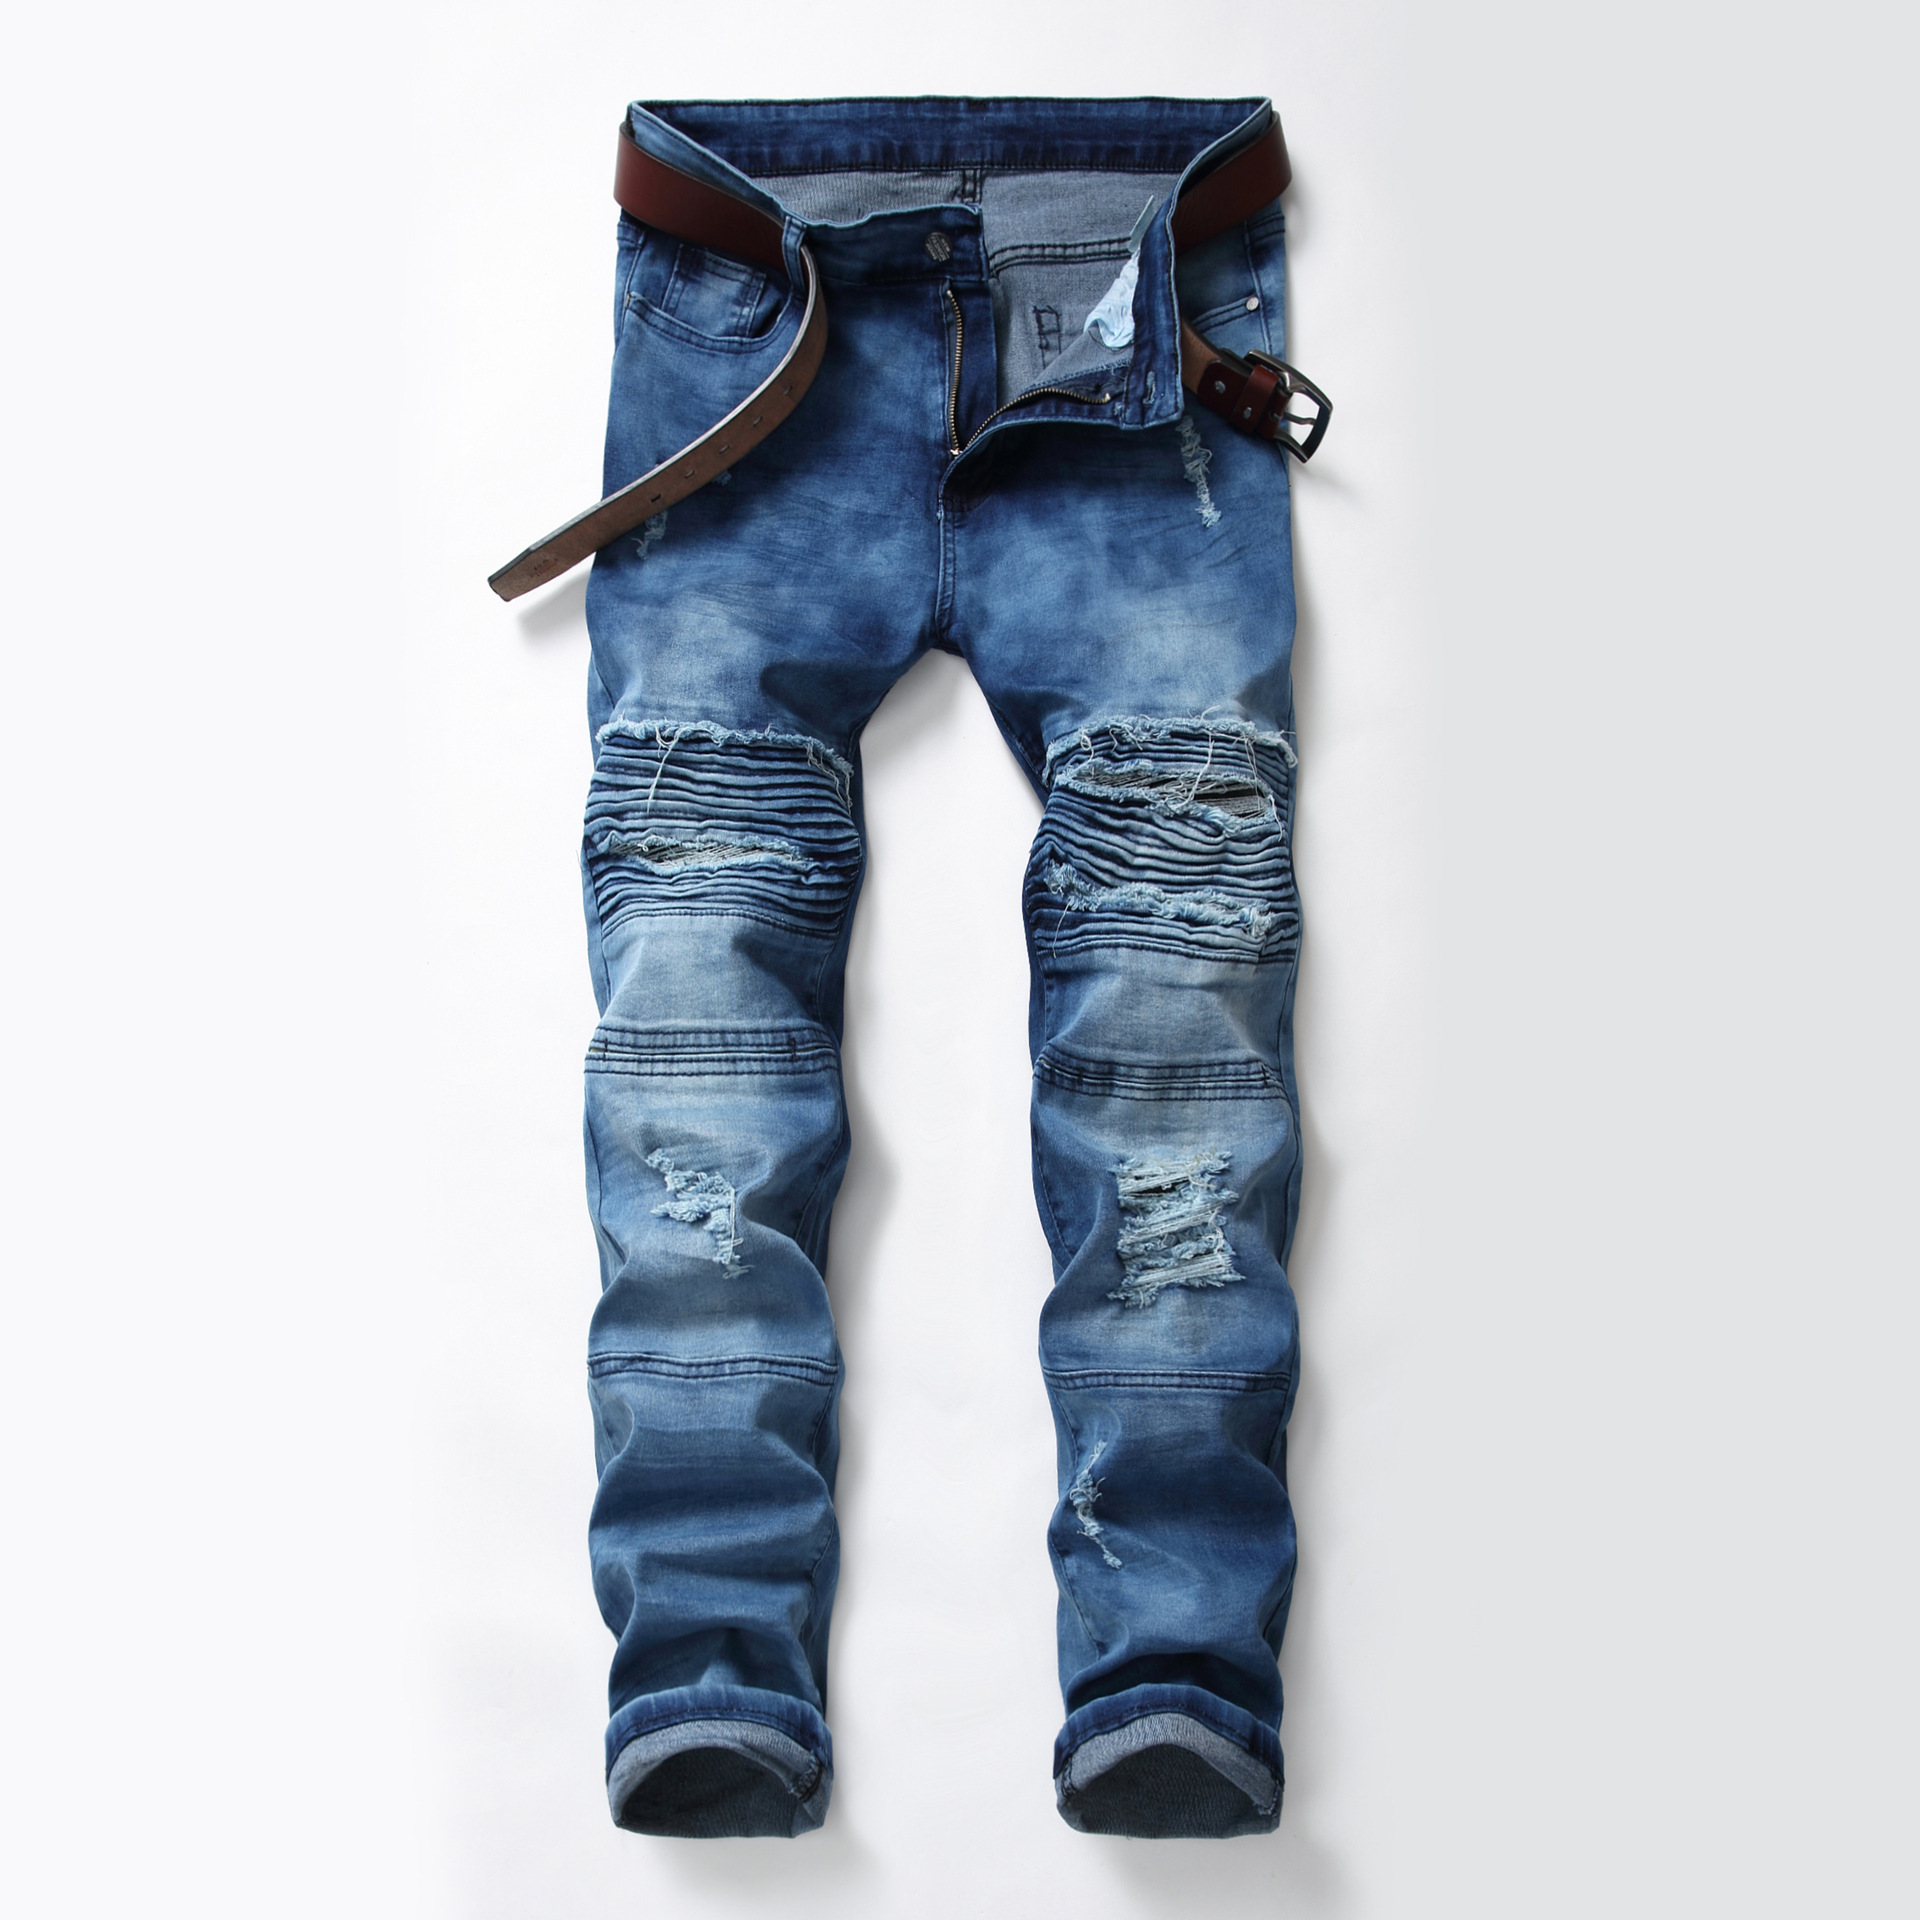 2019 Autumn And Winter New Style MEN'S Jeans Pleated Locomotive Blue Jeans Men's Pencil Pants Slim Fit Men's Trousers Fashion